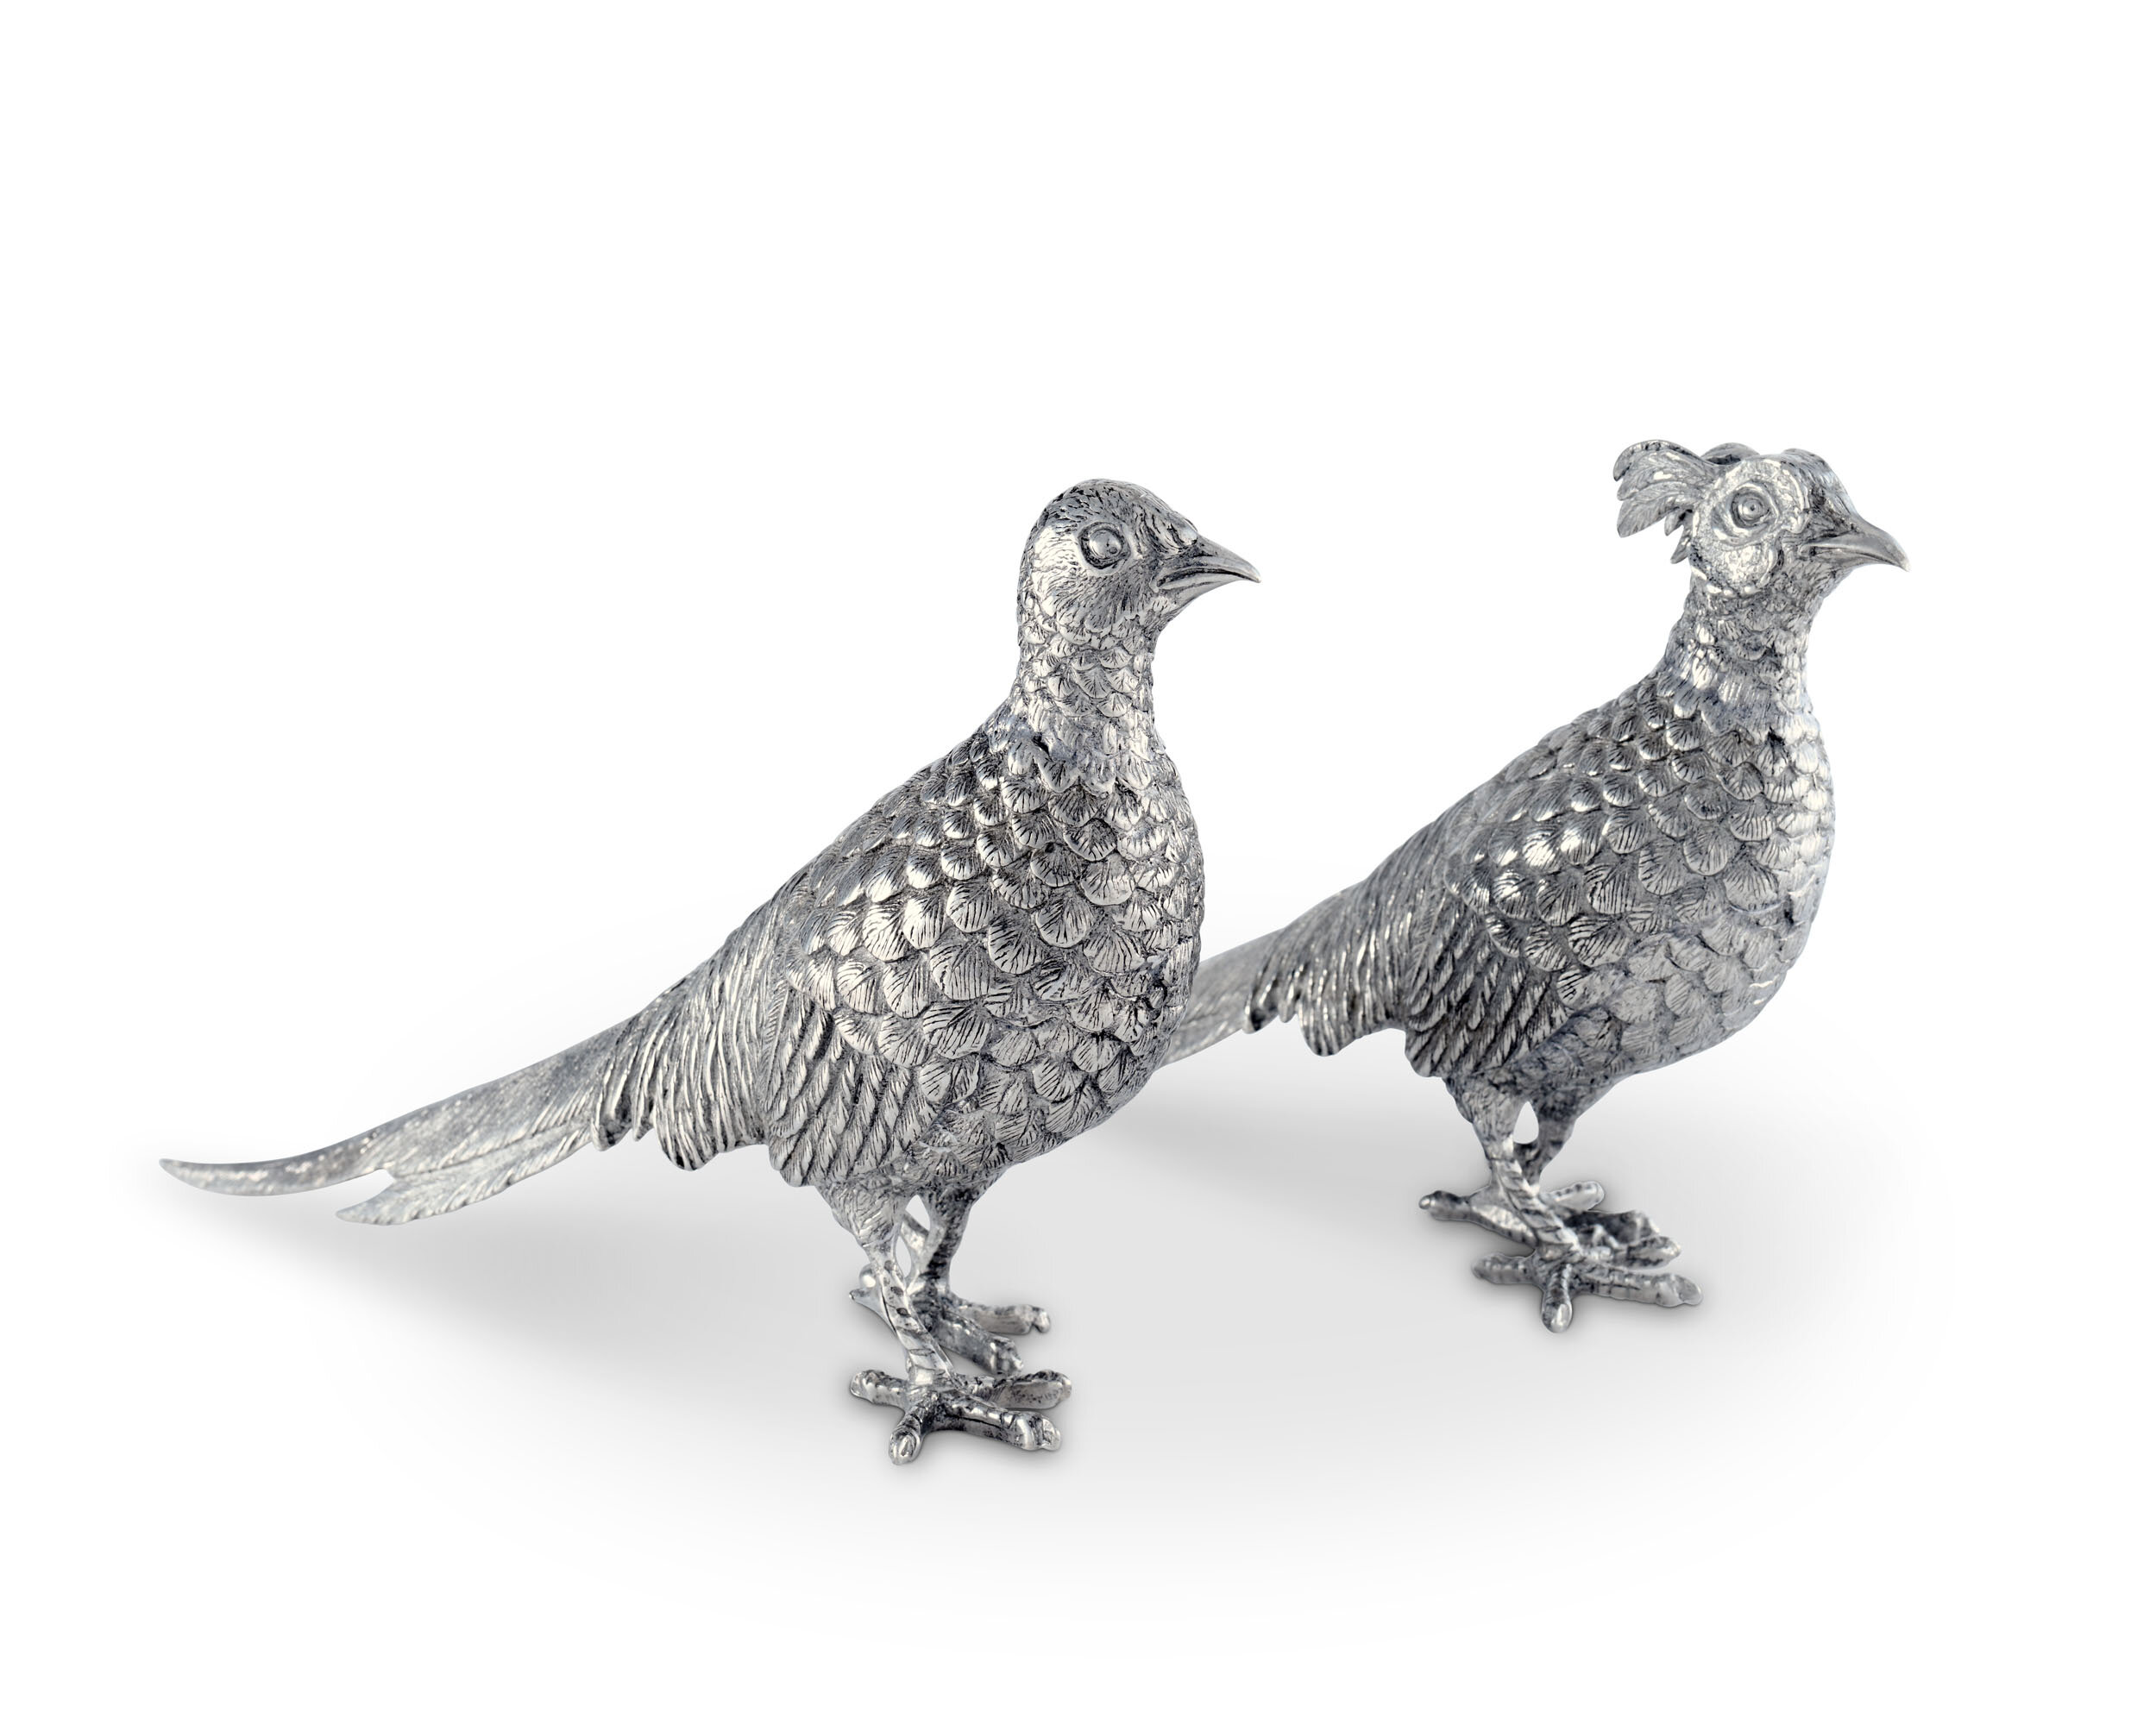 Bird Silver Decorative Objects You Ll Love In 2021 Wayfair